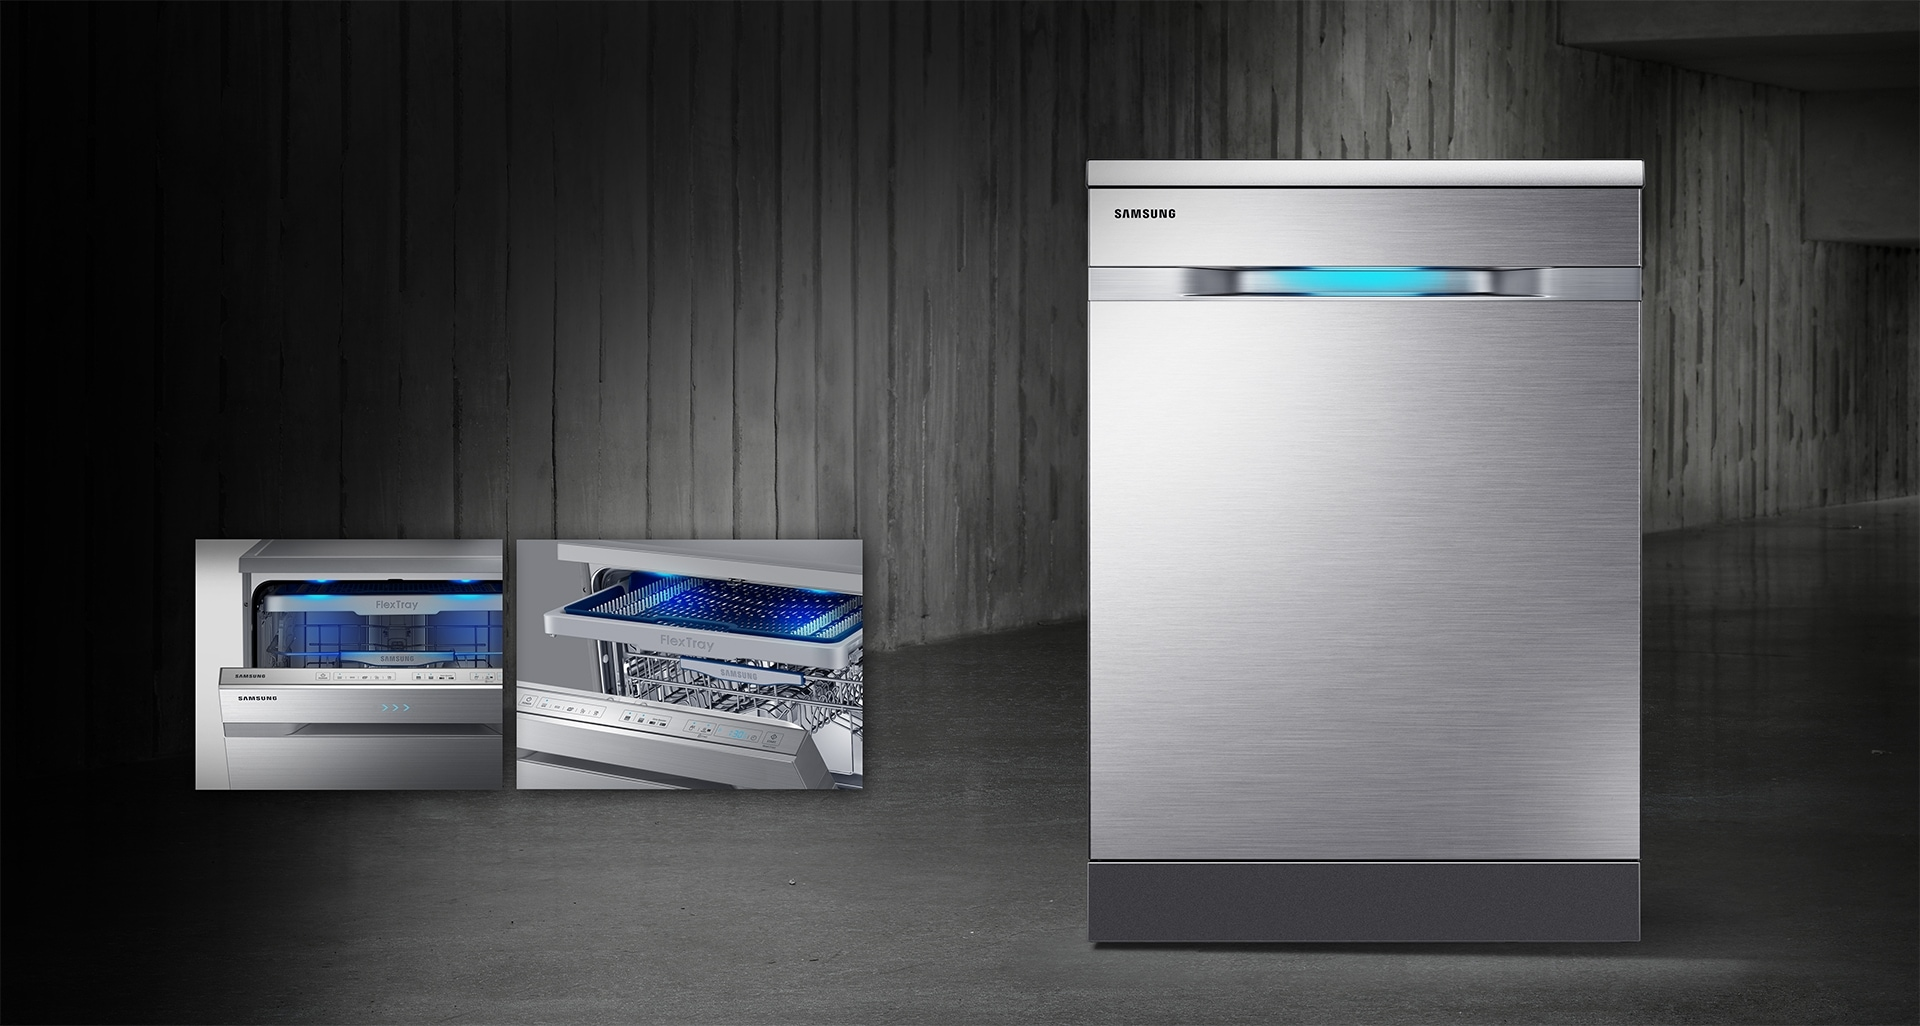 Samsung Express 60 Cycle - Inside the Dishwasher